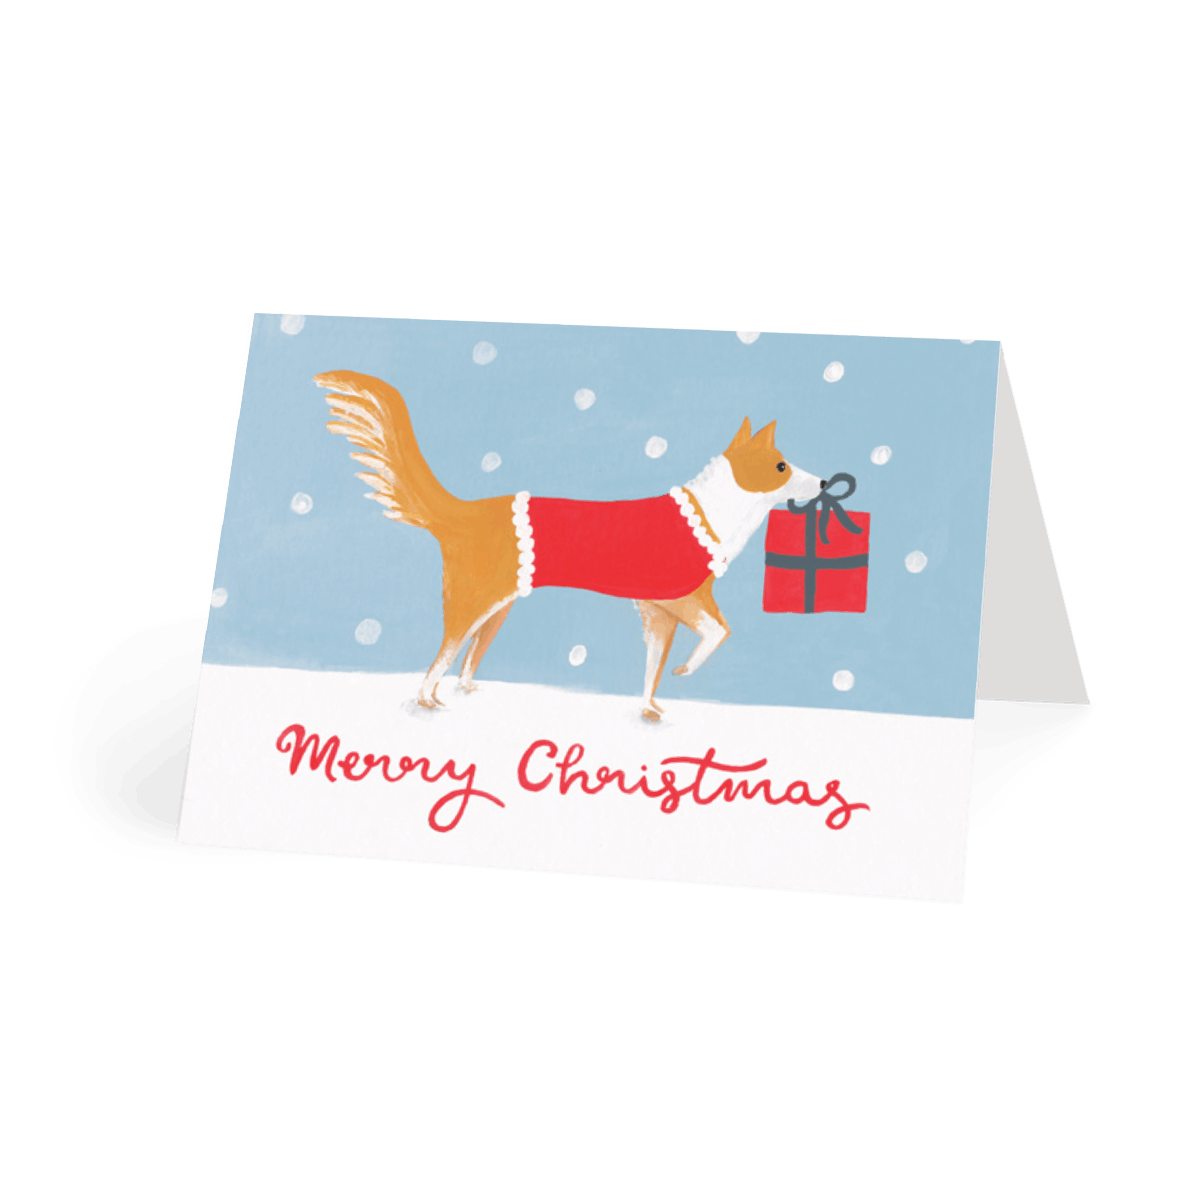 Https%3a%2f%2fwww.papier.com%2fproduct image%2f24863%2f14%2fchristmas collie 6201 front 1498648015.png?ixlib=rb 1.1